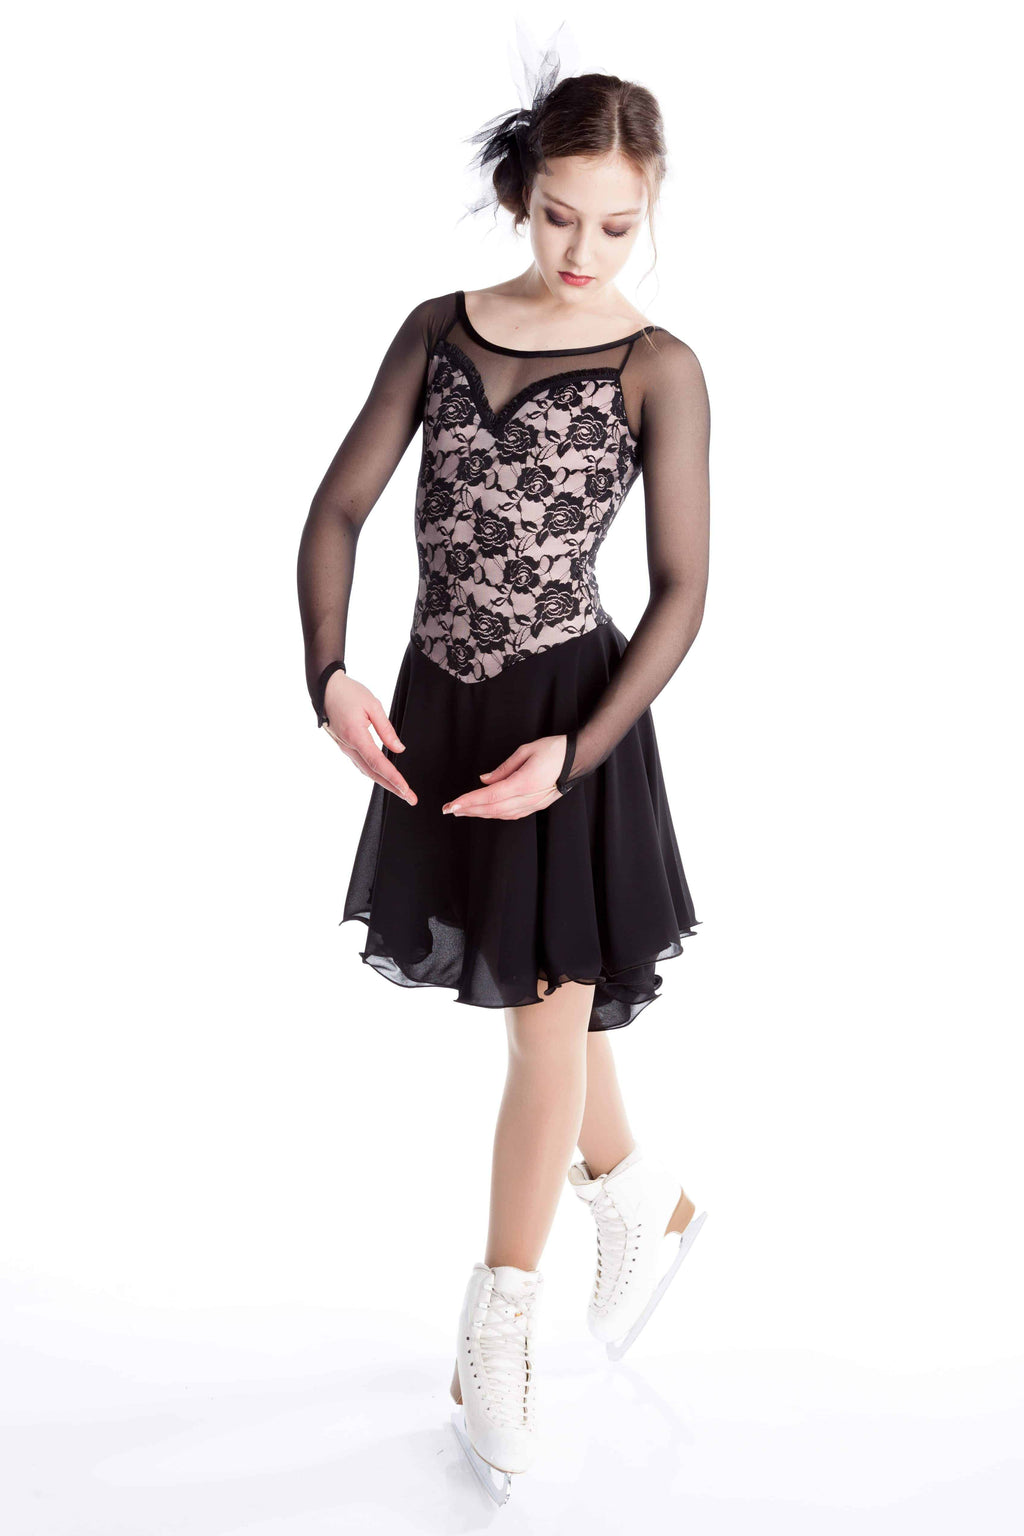 Mature Simplicity Dance - Black-Blush - Elite Xpression